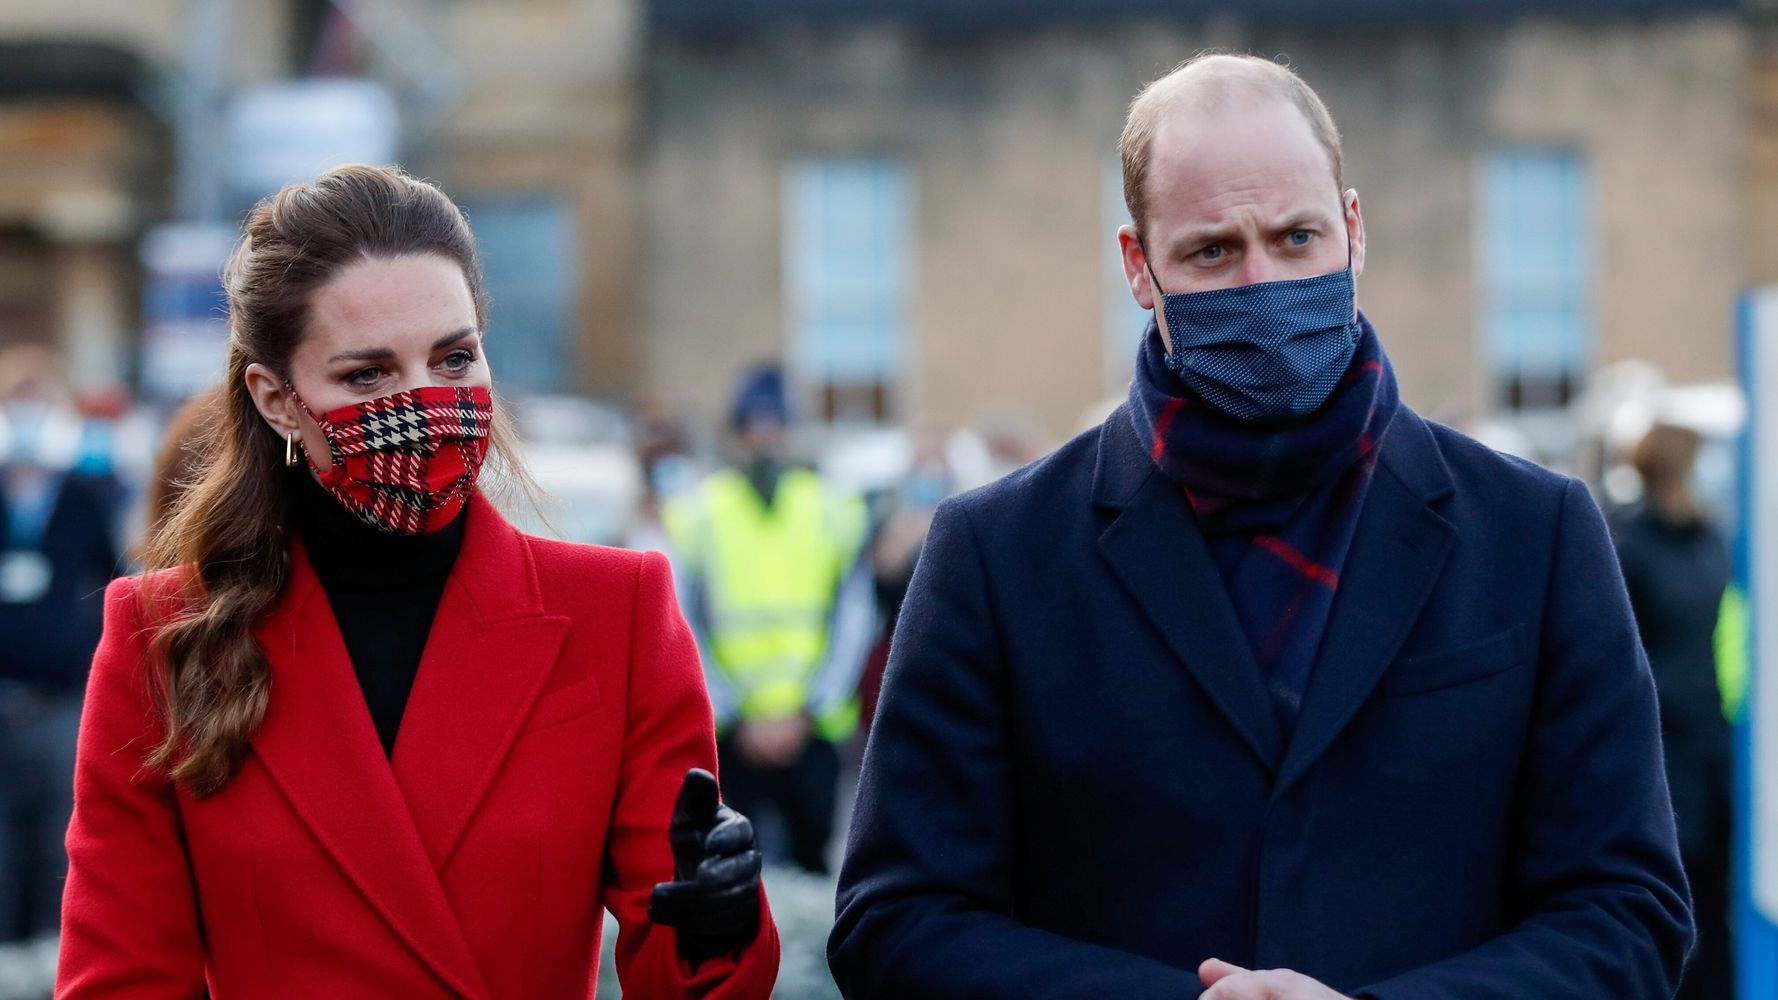 Prince William And Kate Middleton's Royal Train Tour Criticized Amid Pandemic